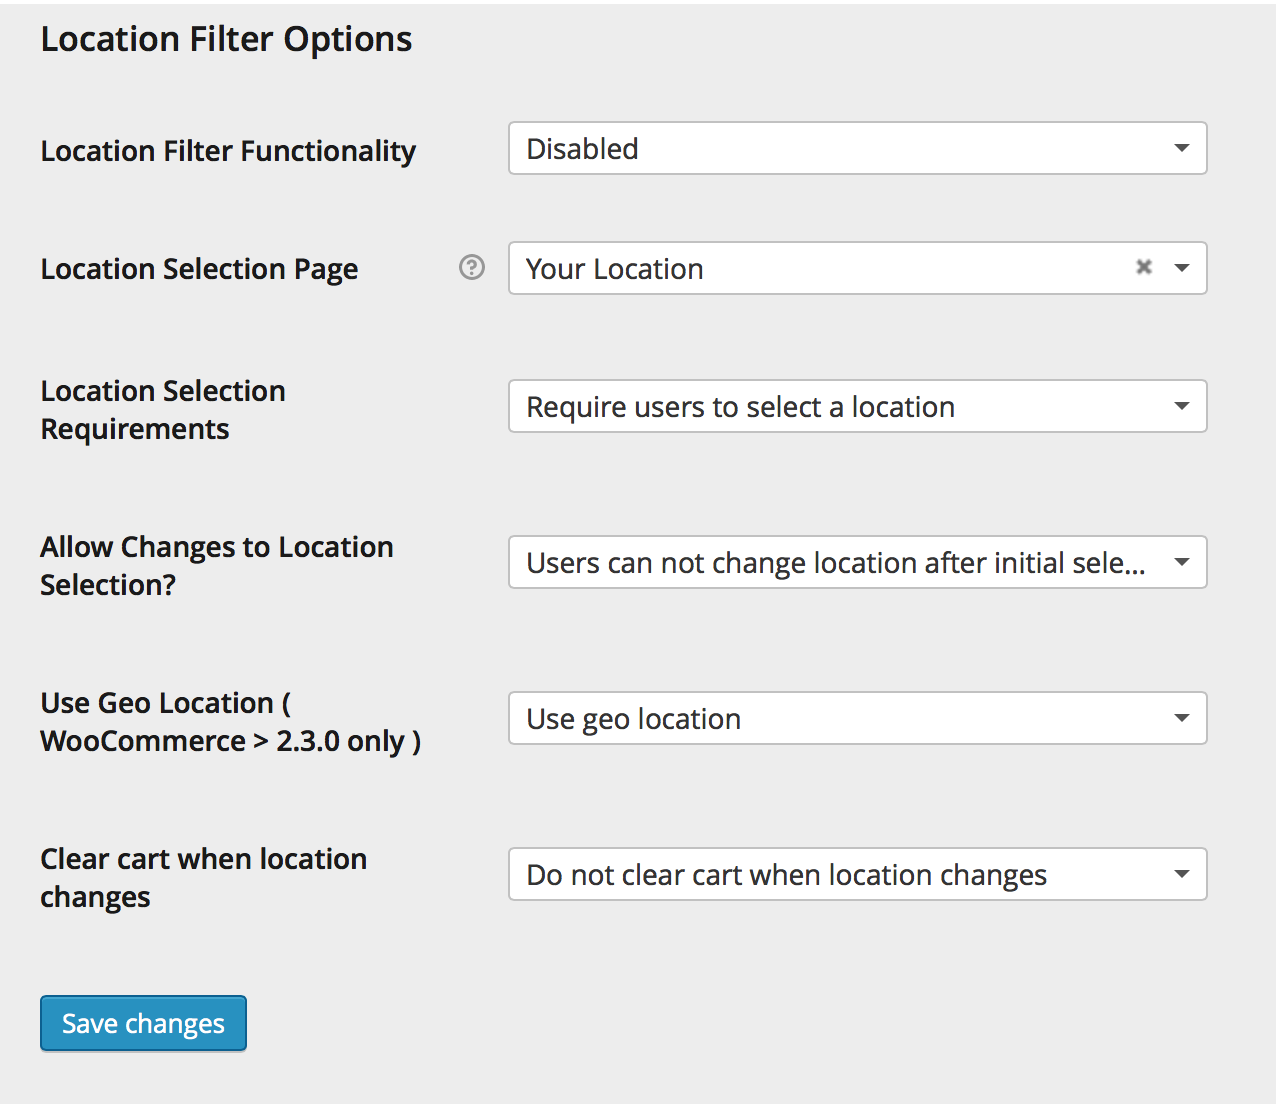 locationfilteroptions